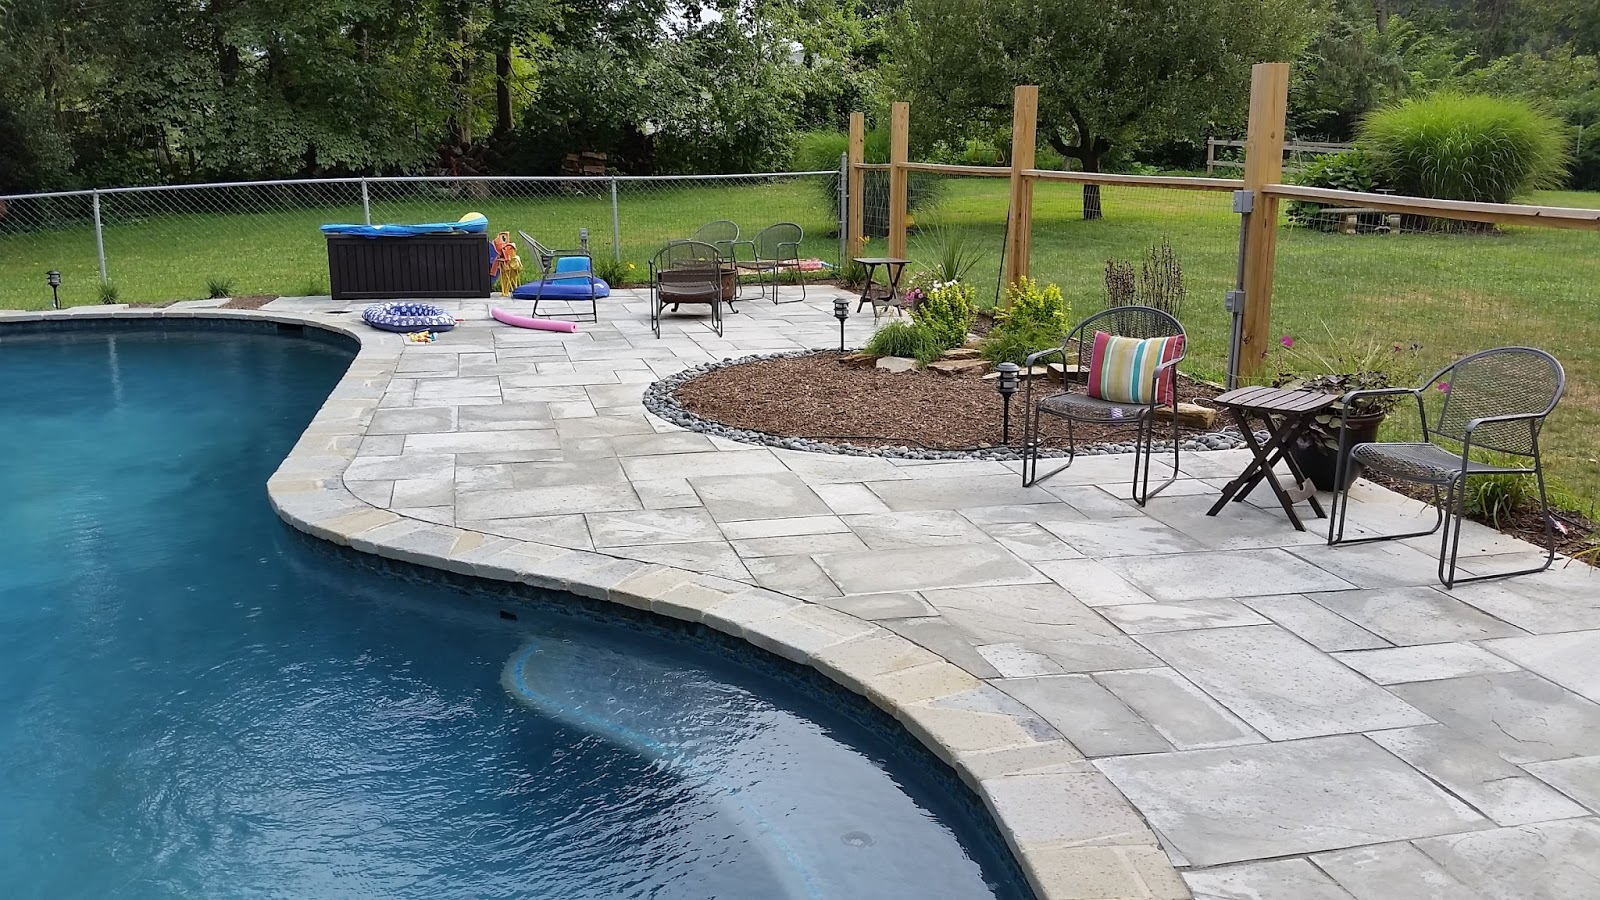 Change the entire look and feel of your pool using pool pavers